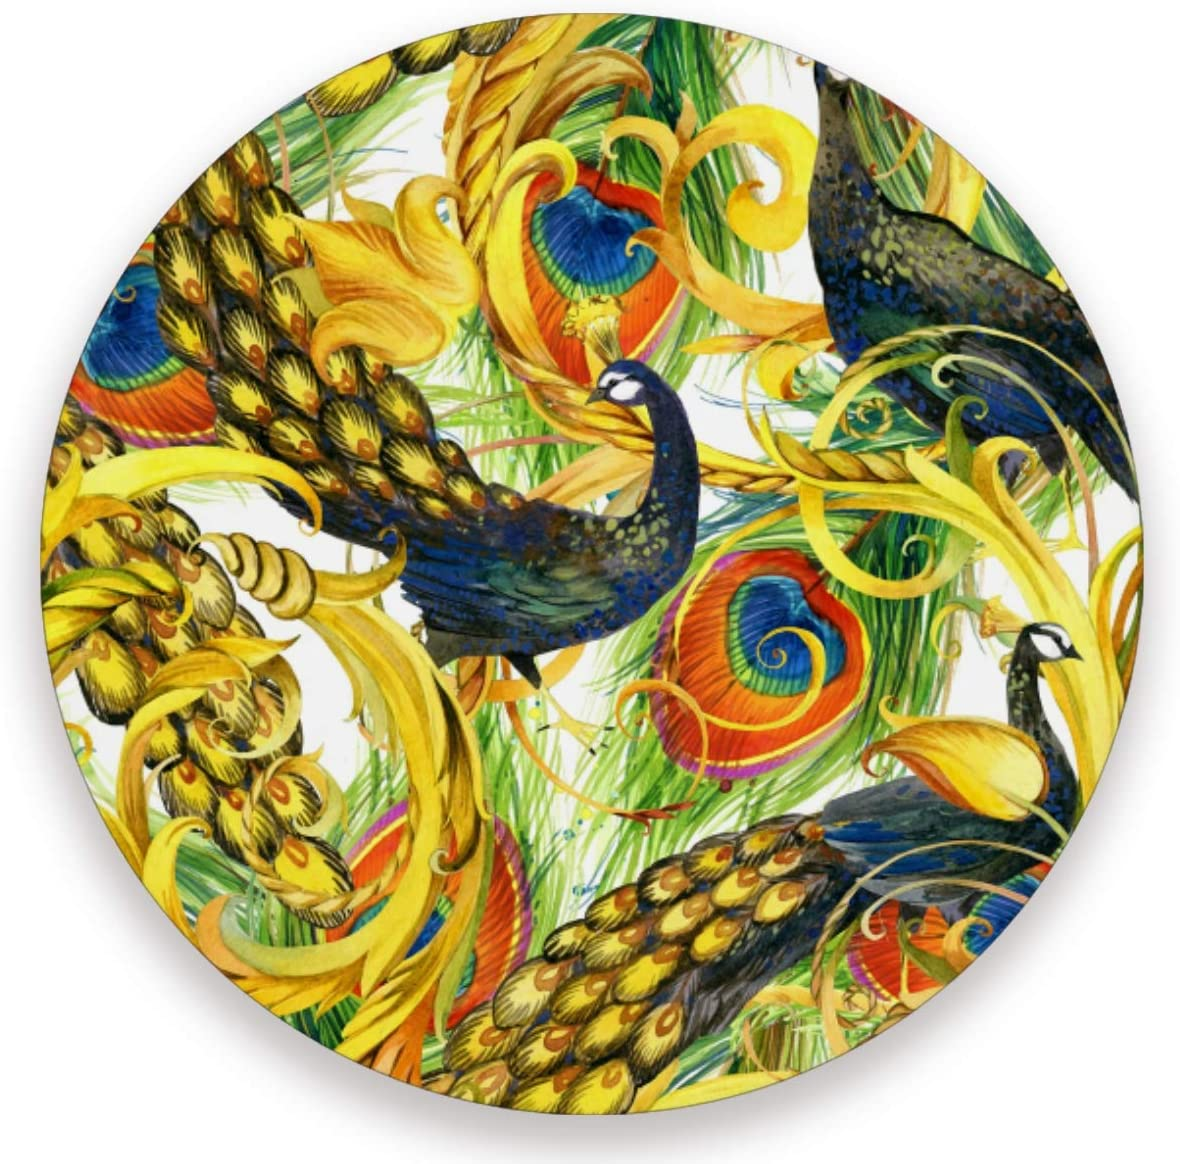 Olinyou Vintage Peacock Gold Animal Painting Coaster for Drinks 1 Pieces Absorbent Ceramic Stone Coasters with Cork Base